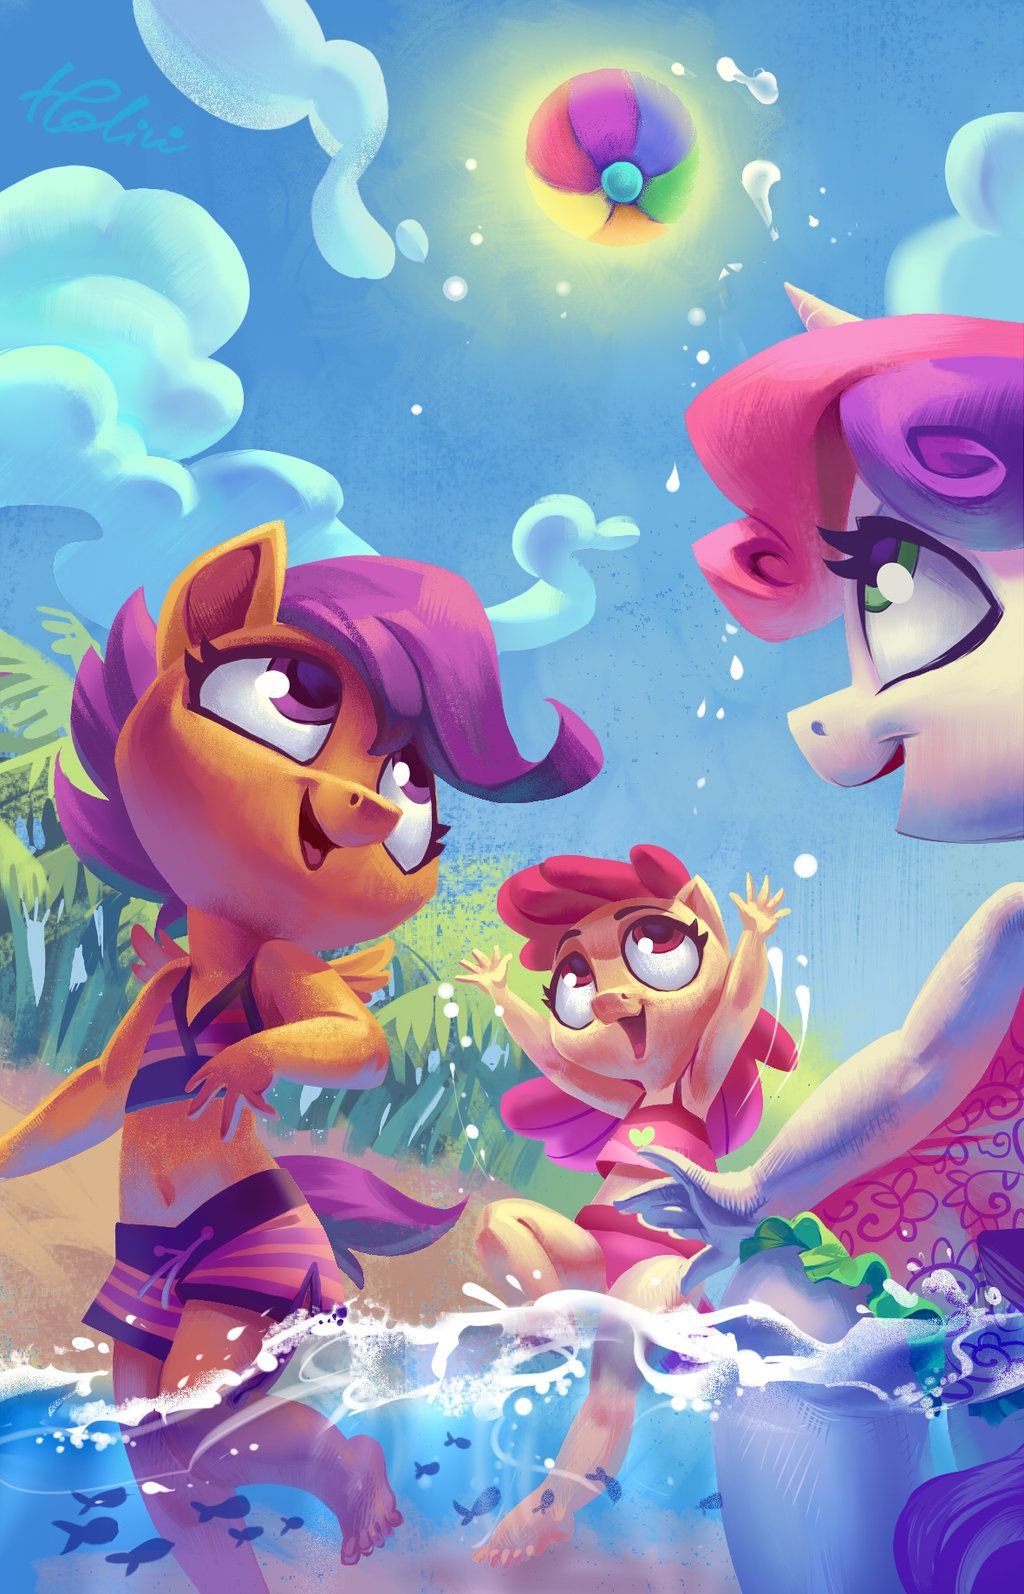 Scootaloo Apple Bloom Sweetie Belle All As Partial Humans Drawing By Holivi Devian My Little Pony Games My Little Pony Wallpaper My Little Pony Pictures A bad drawing of scootaloo from my little pony friendship is magic.enjoy. pinterest